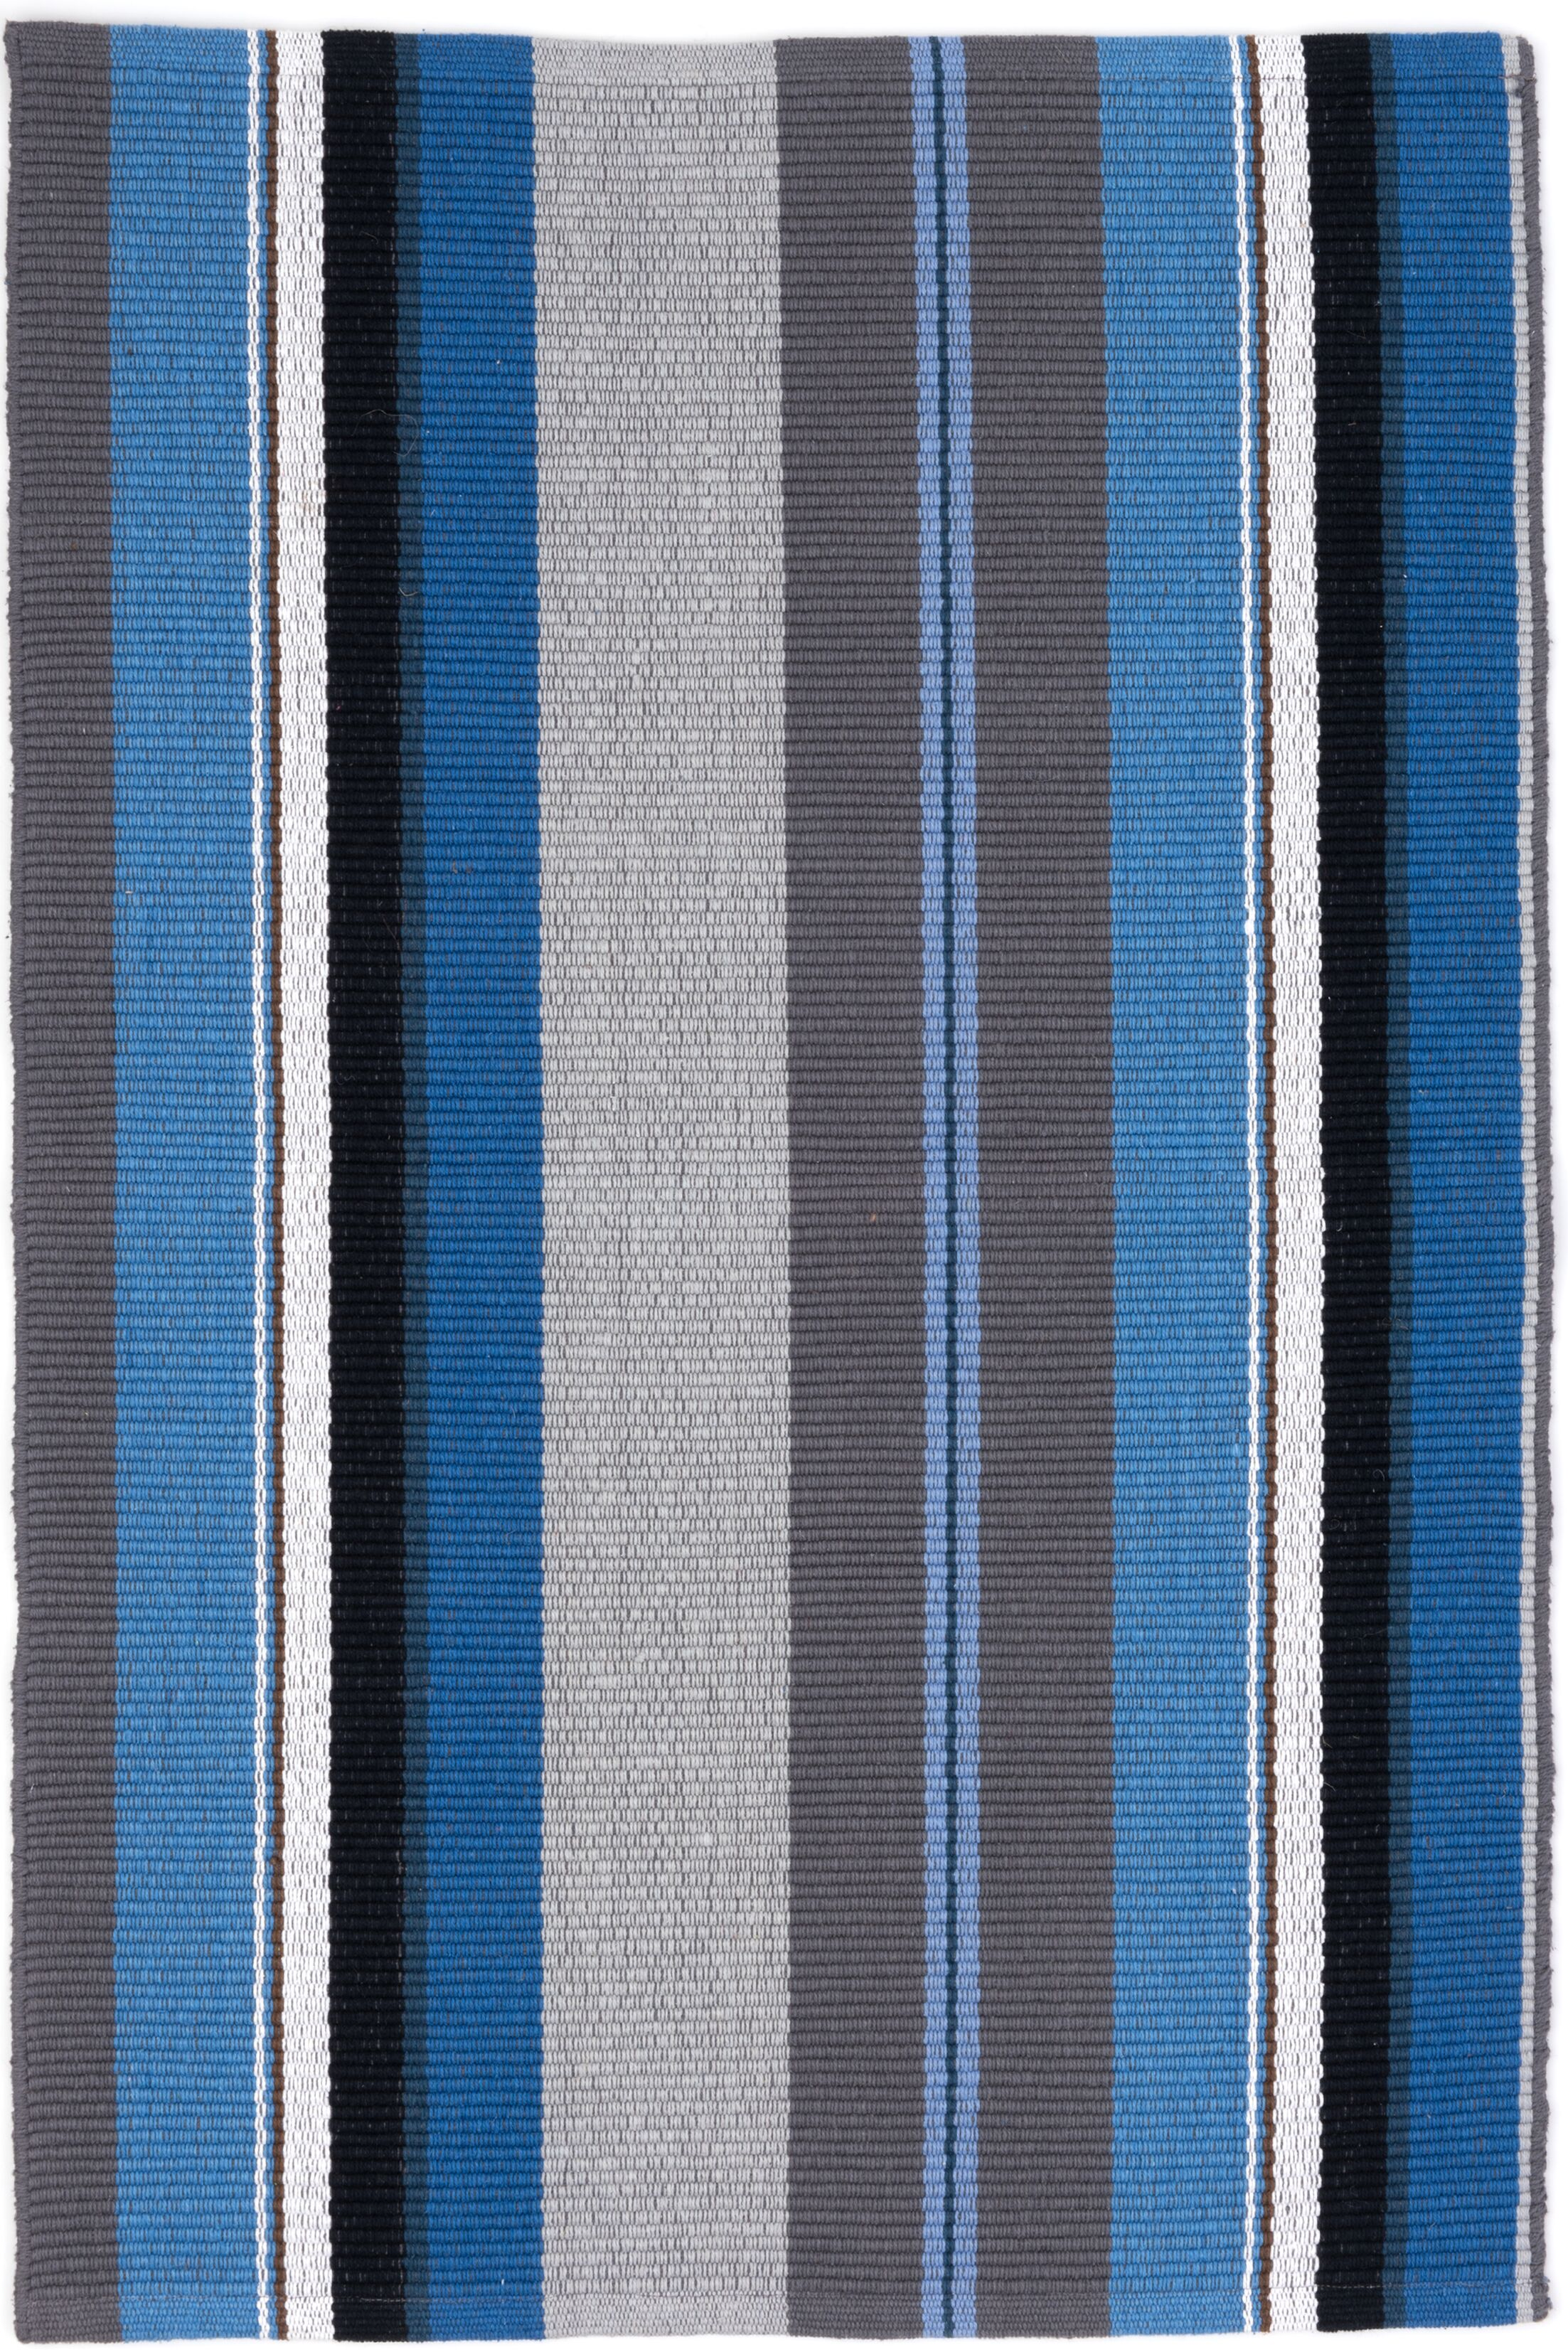 Hand Woven Blue Area Rug Rug Size: 9' x 12'